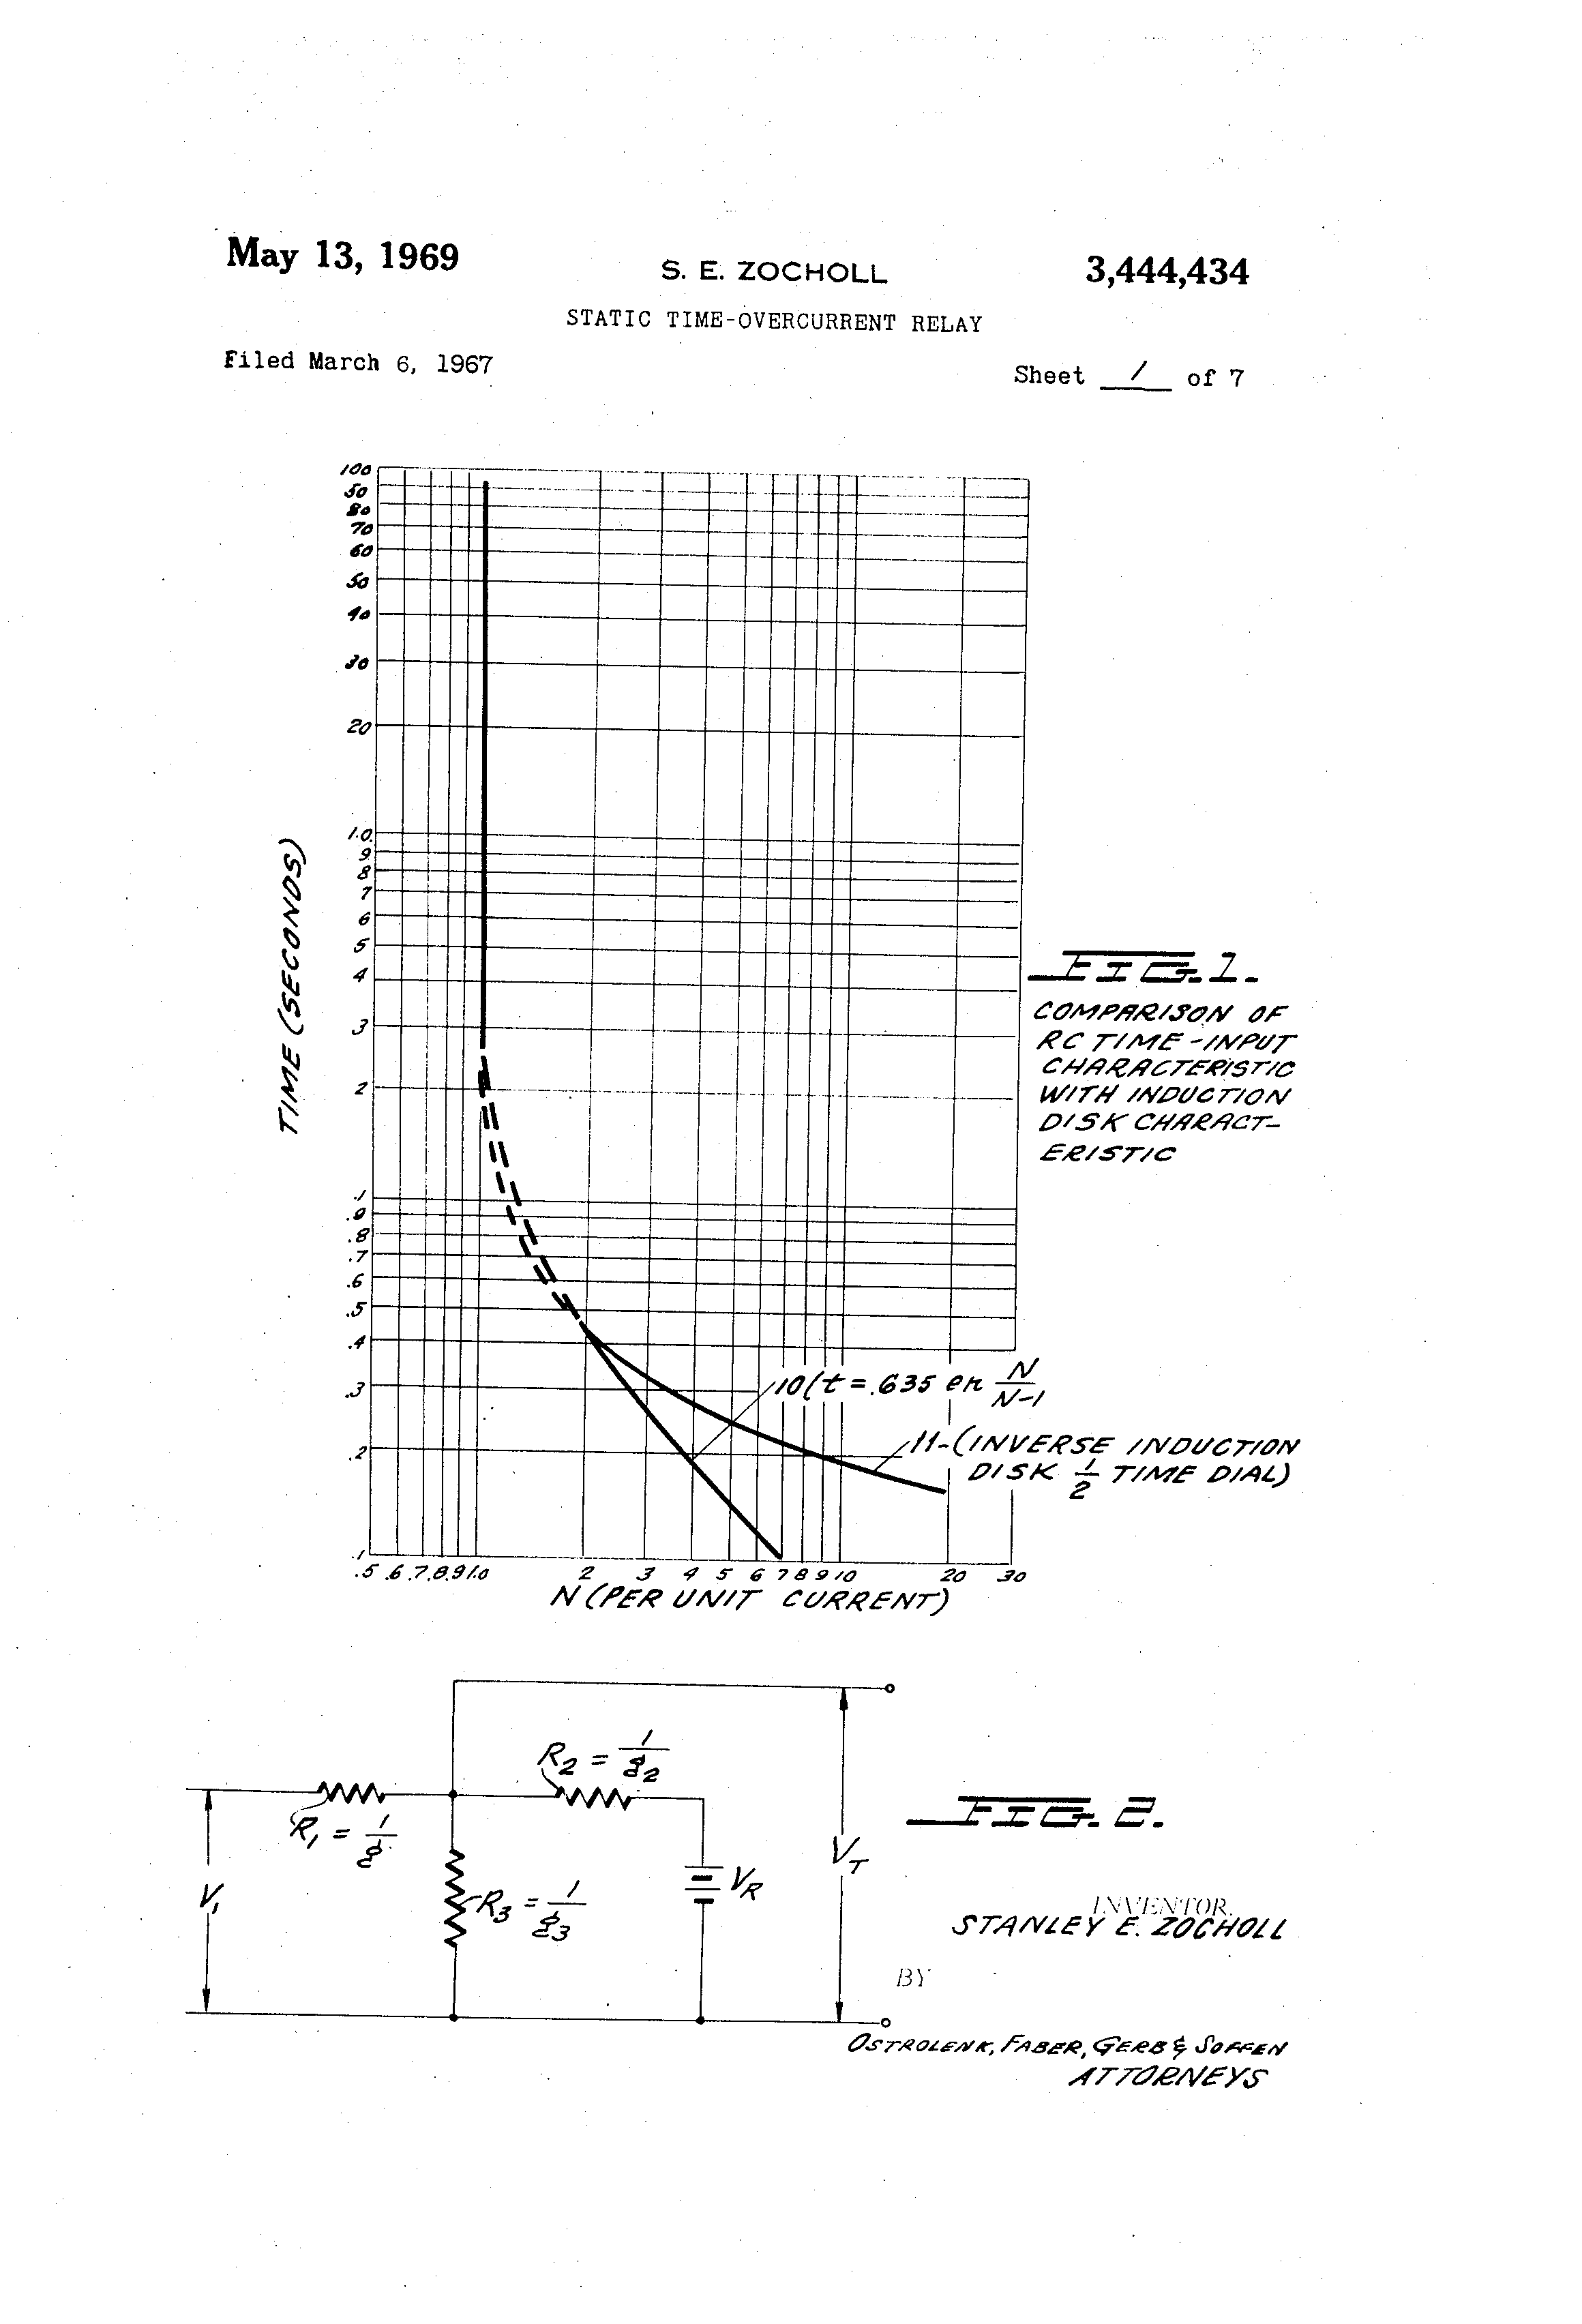 Patent US Static Timeovercurrent Relay Google Patents - Static relay working principle